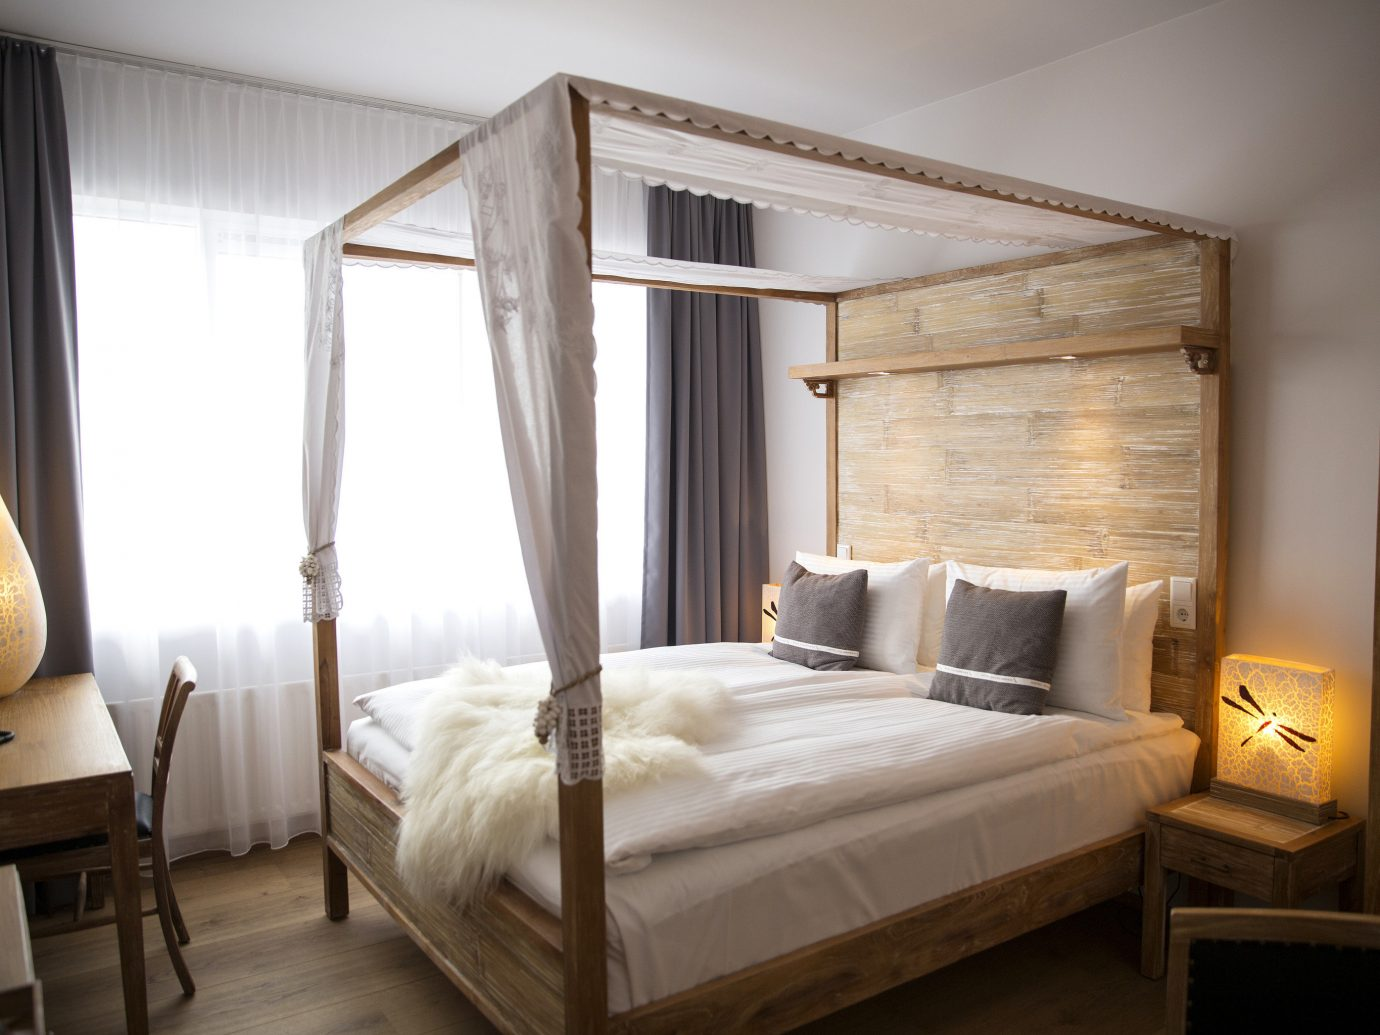 Boutique Hotels Hotels Iceland Reykjavík indoor wall floor bed bed frame room Suite Bedroom interior design ceiling furniture four poster mattress wood window window treatment hotel bed sheet window covering bedding interior designer